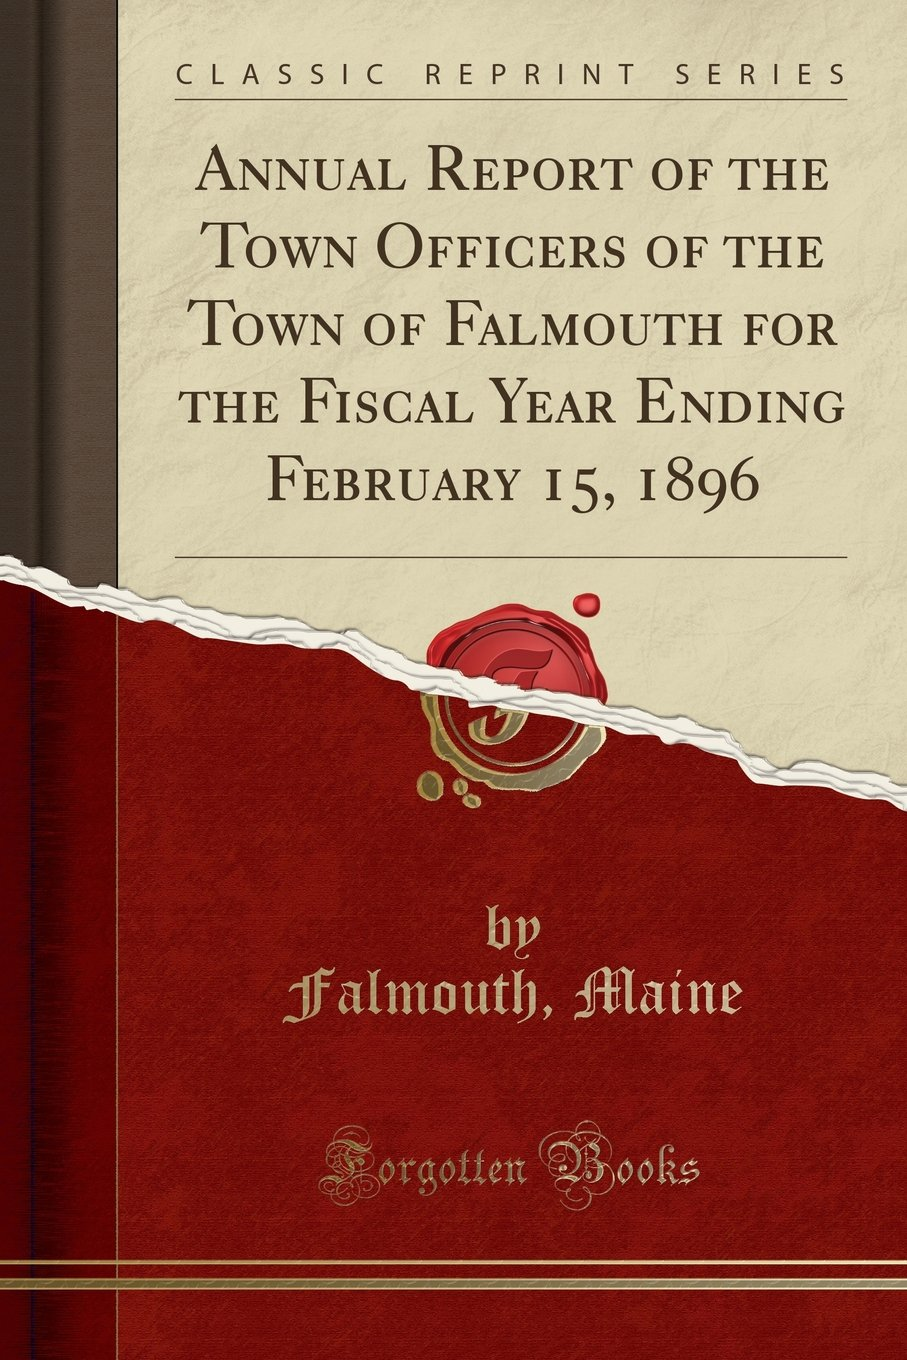 Annual Report of the Town Officers of the Town of Falmouth for the Fiscal Year Ending February 15, 1896 (Classic Reprint) pdf epub